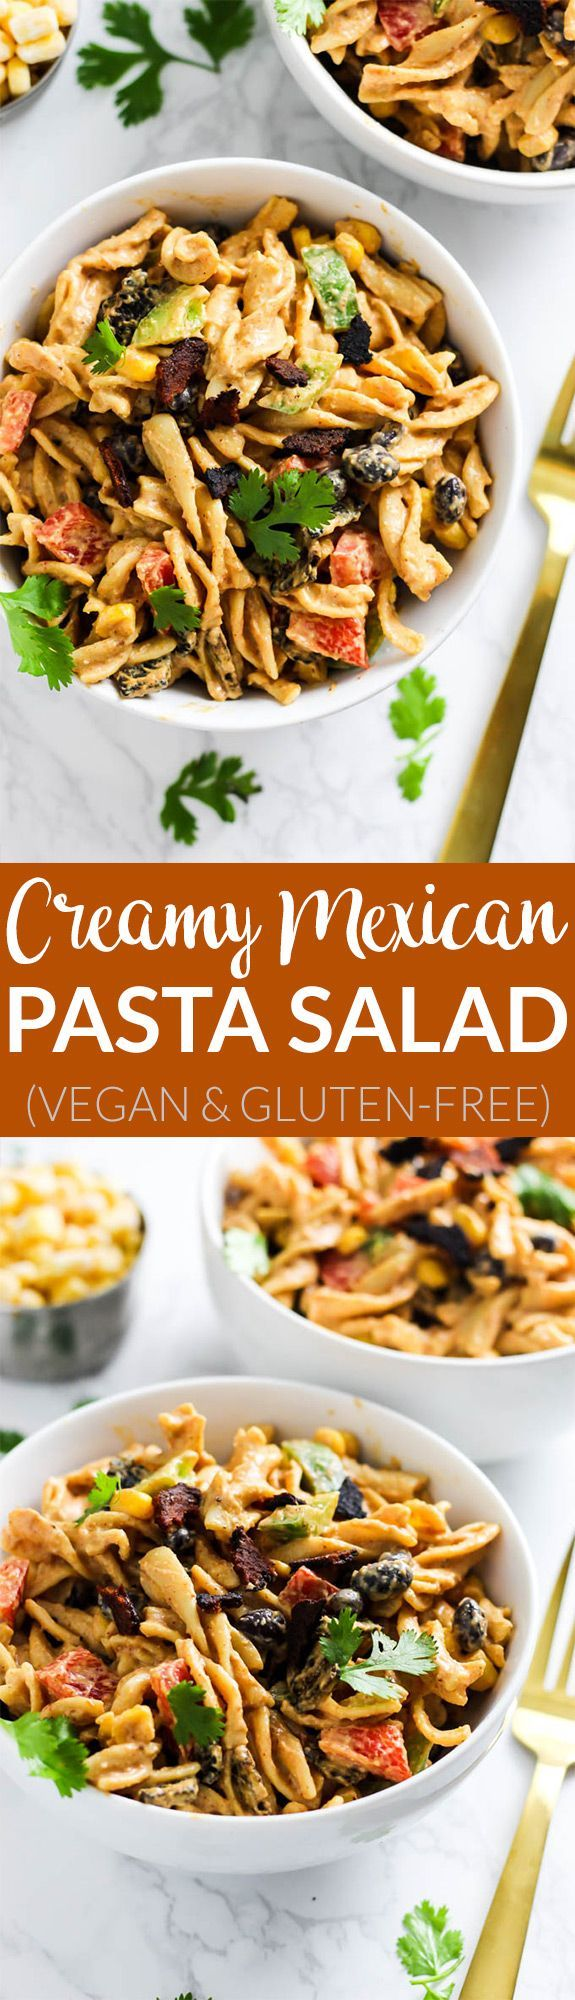 This Creamy Vegan Mexican Pasta Salad is packed with spicy flavor, vegetables and healthy fats to satisfy you at meal time. Only 30 minutes of prep time! @sweetearthfoods #ad #sweetearth